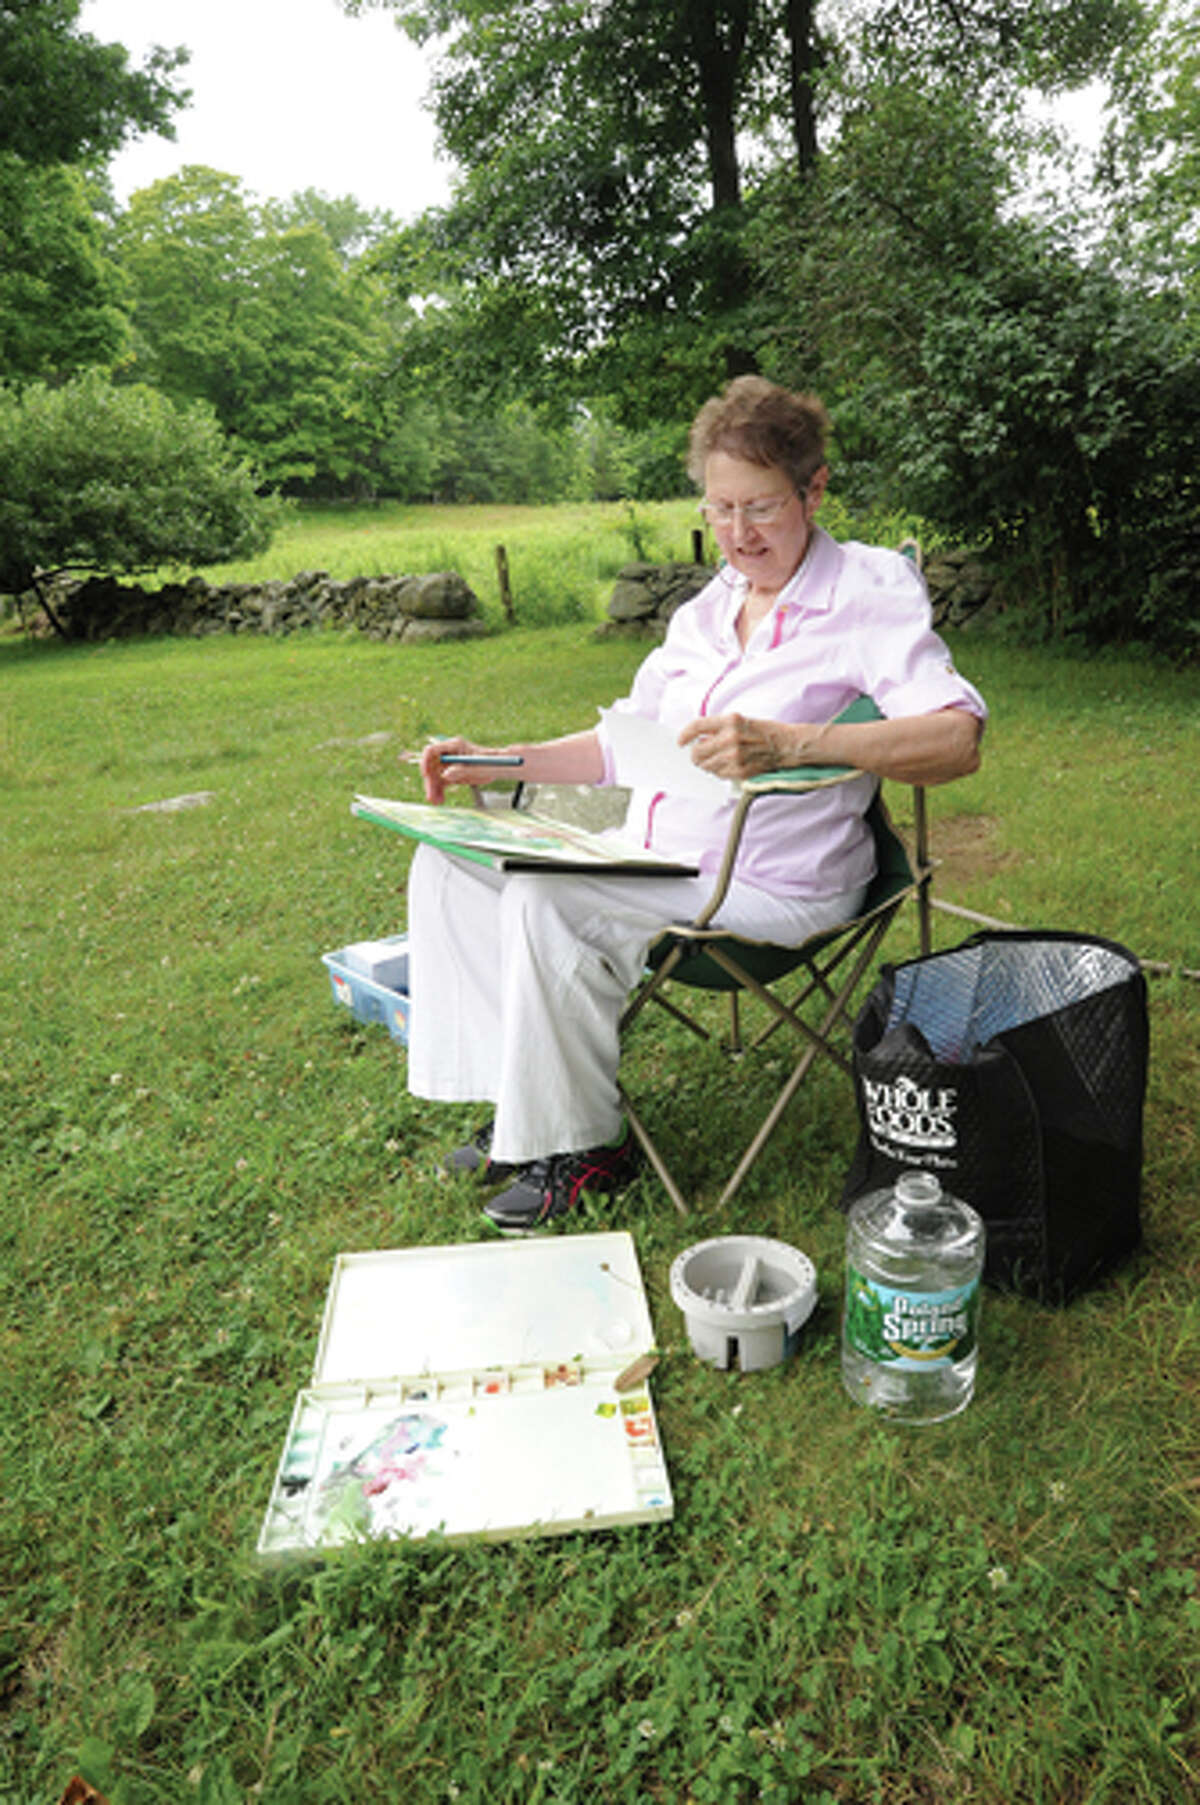 Rita Mochacsi works on her Watercolor Sunday at Weir Farm in Wilton as part of a workshop led by artist Dimitri Wright.